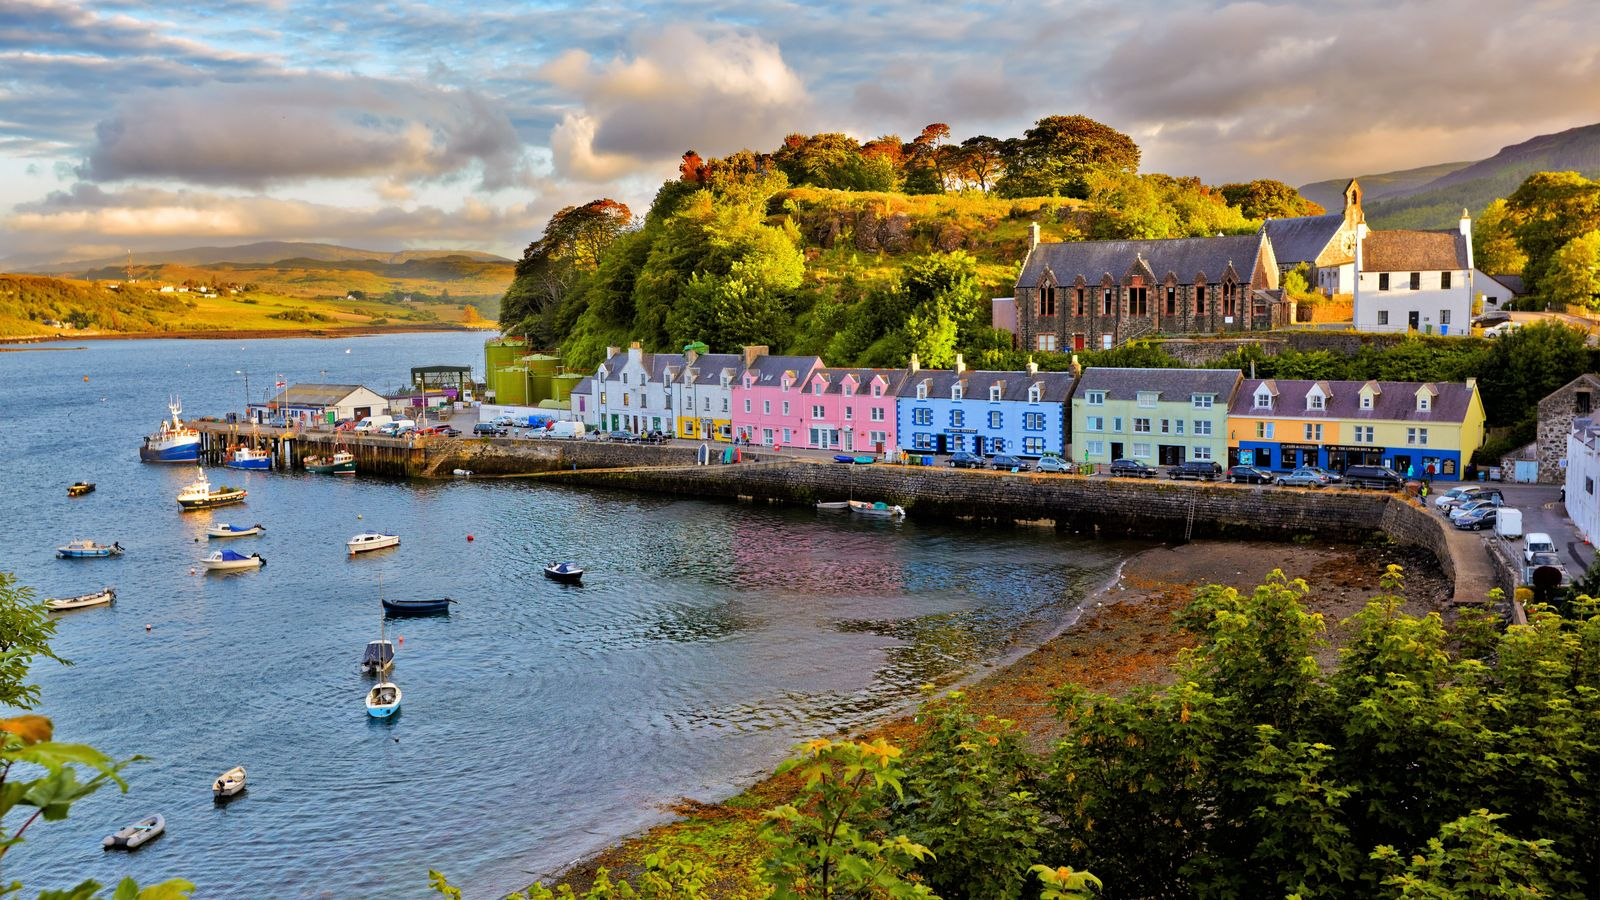 Portree is the largest town on the Isle of Skye.